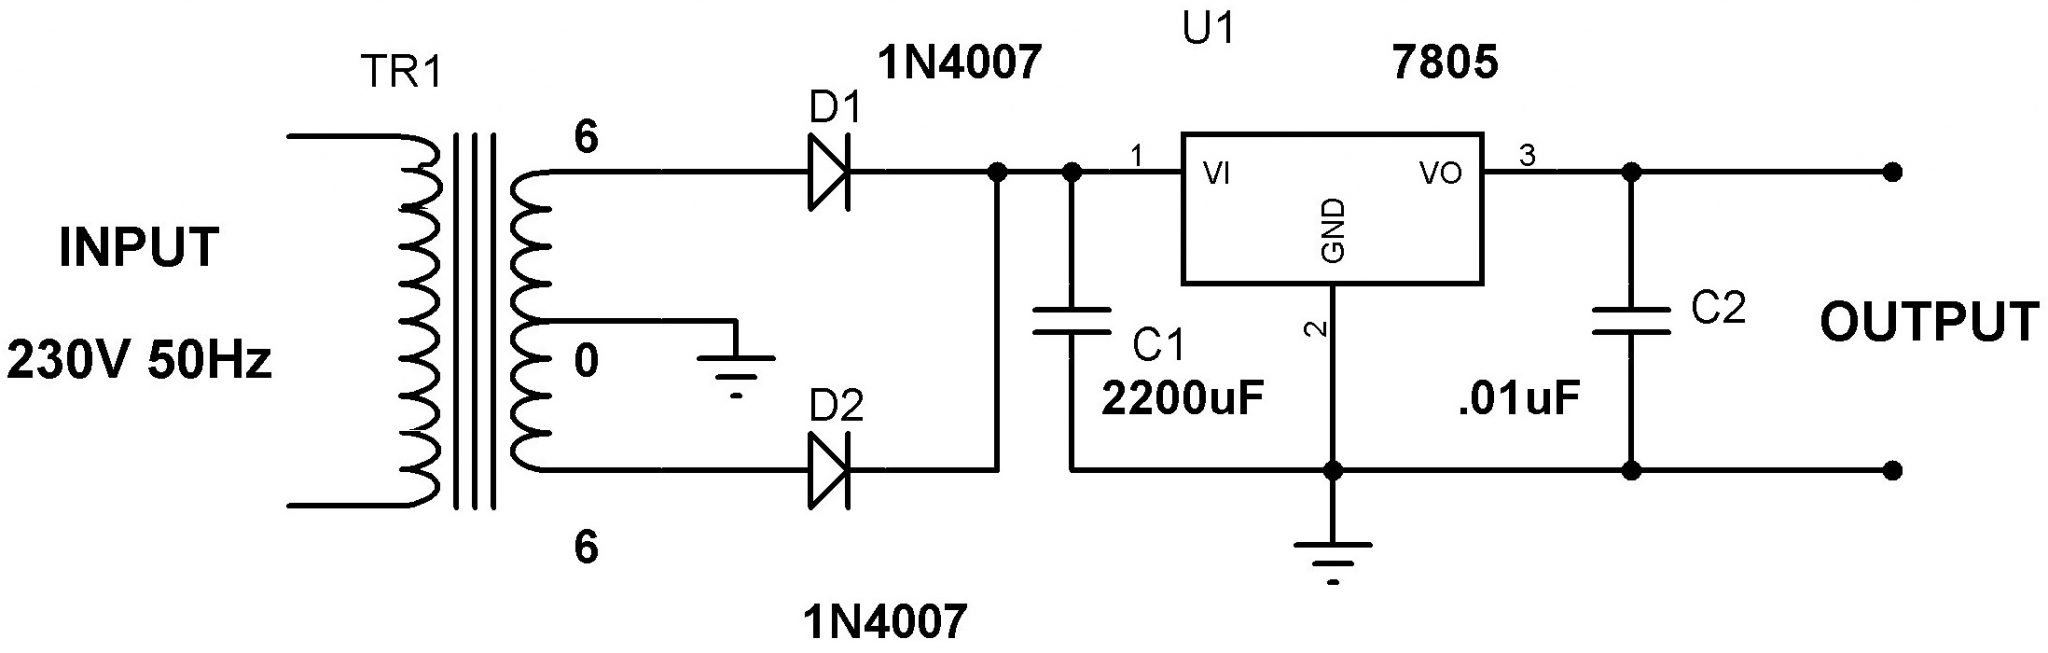 5v power supply using 7805 voltage regulator with design 5v power supply circuit using 7805 voltage regulator pooptronica